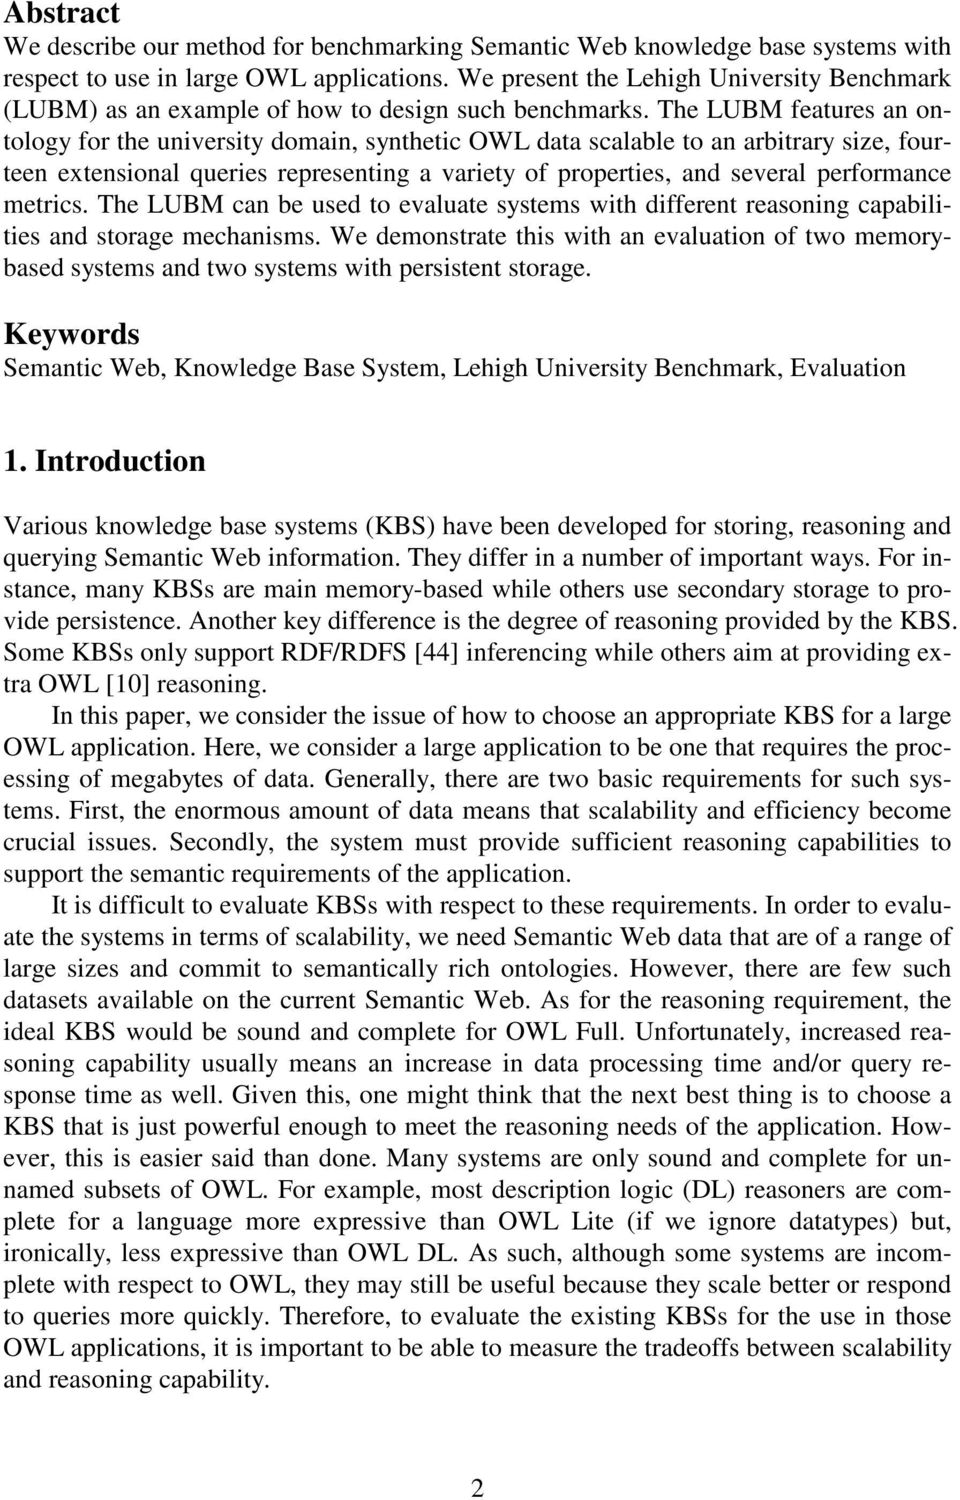 The LUBM features an ontology for the university domain, synthetic OWL data scalable to an arbitrary size, fourteen extensional queries representing a variety of properties, and several performance